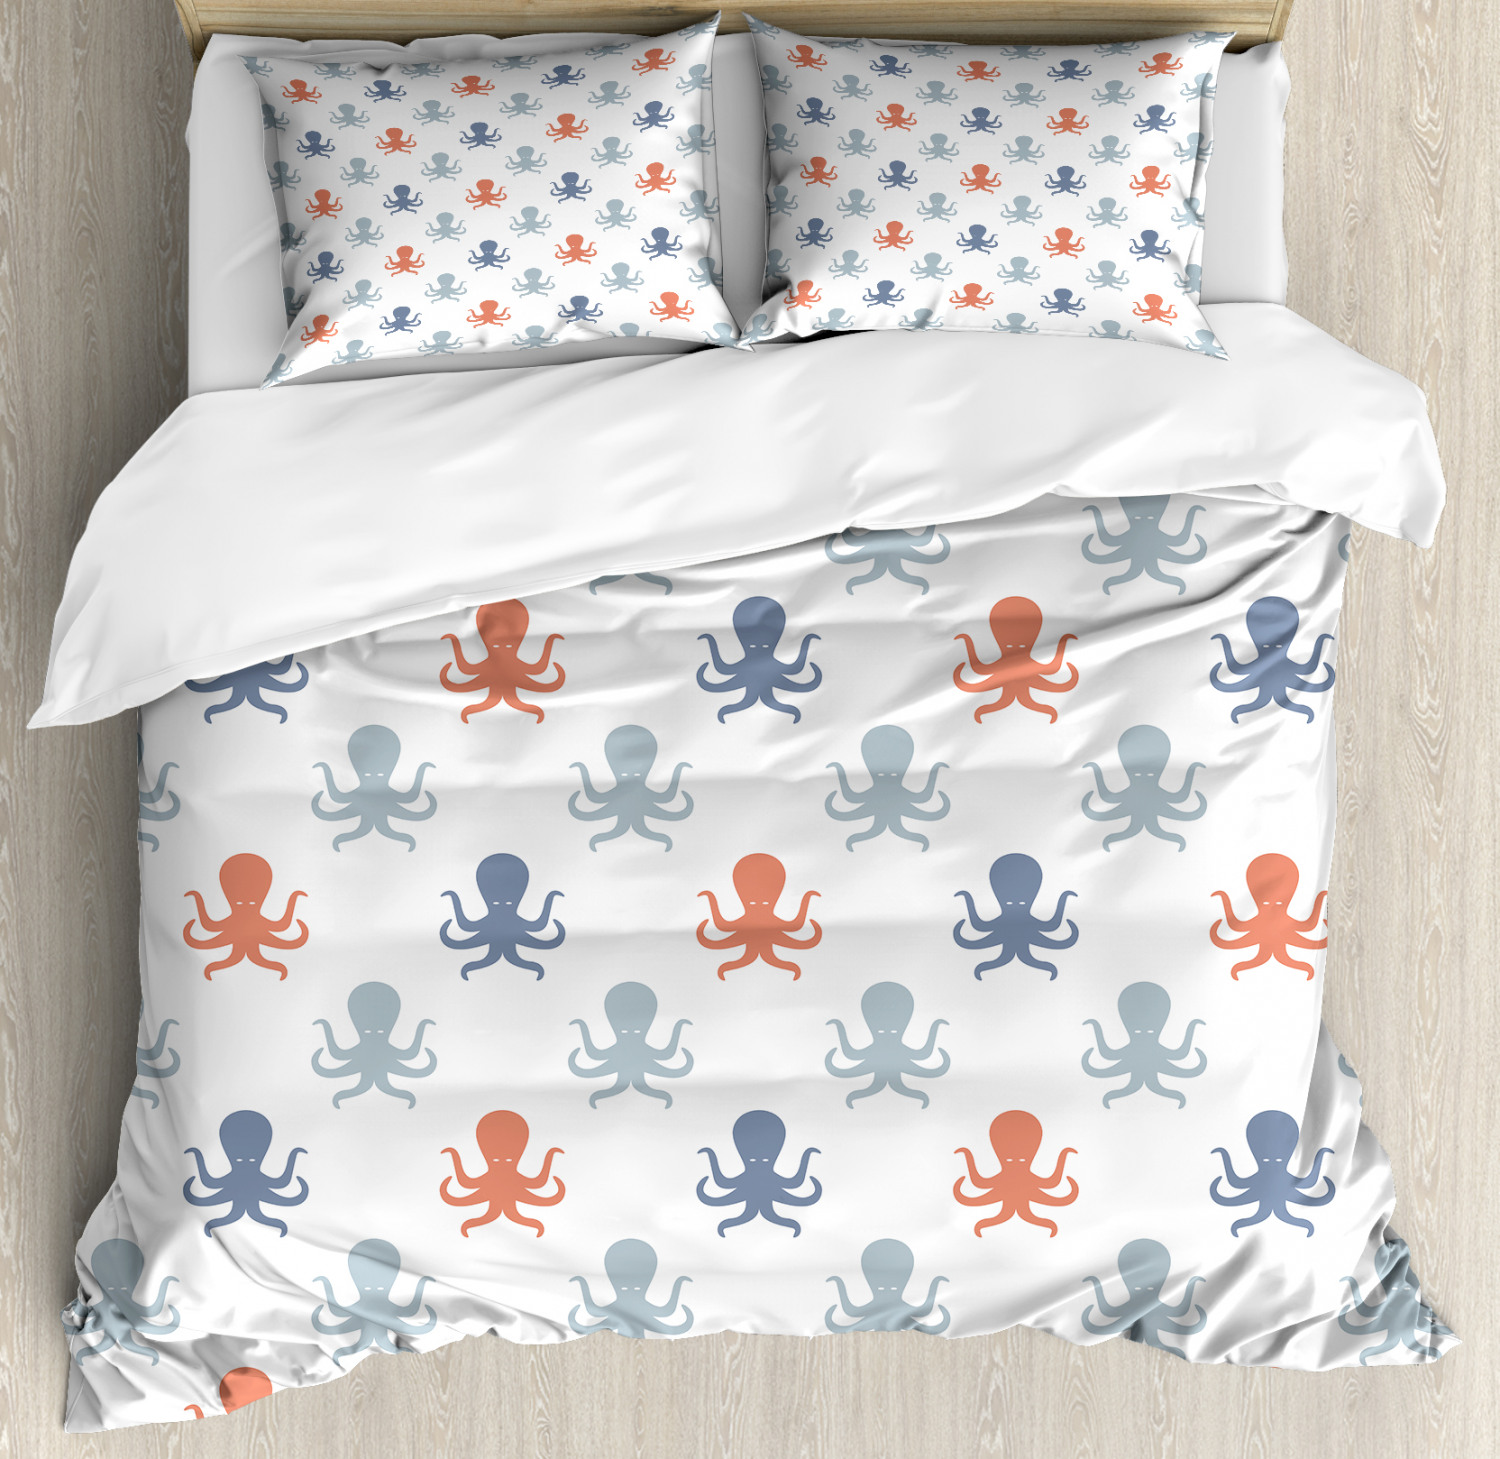 Octopus Duvet Cover Set with Pillow Shams Nautical Silhouettes Print